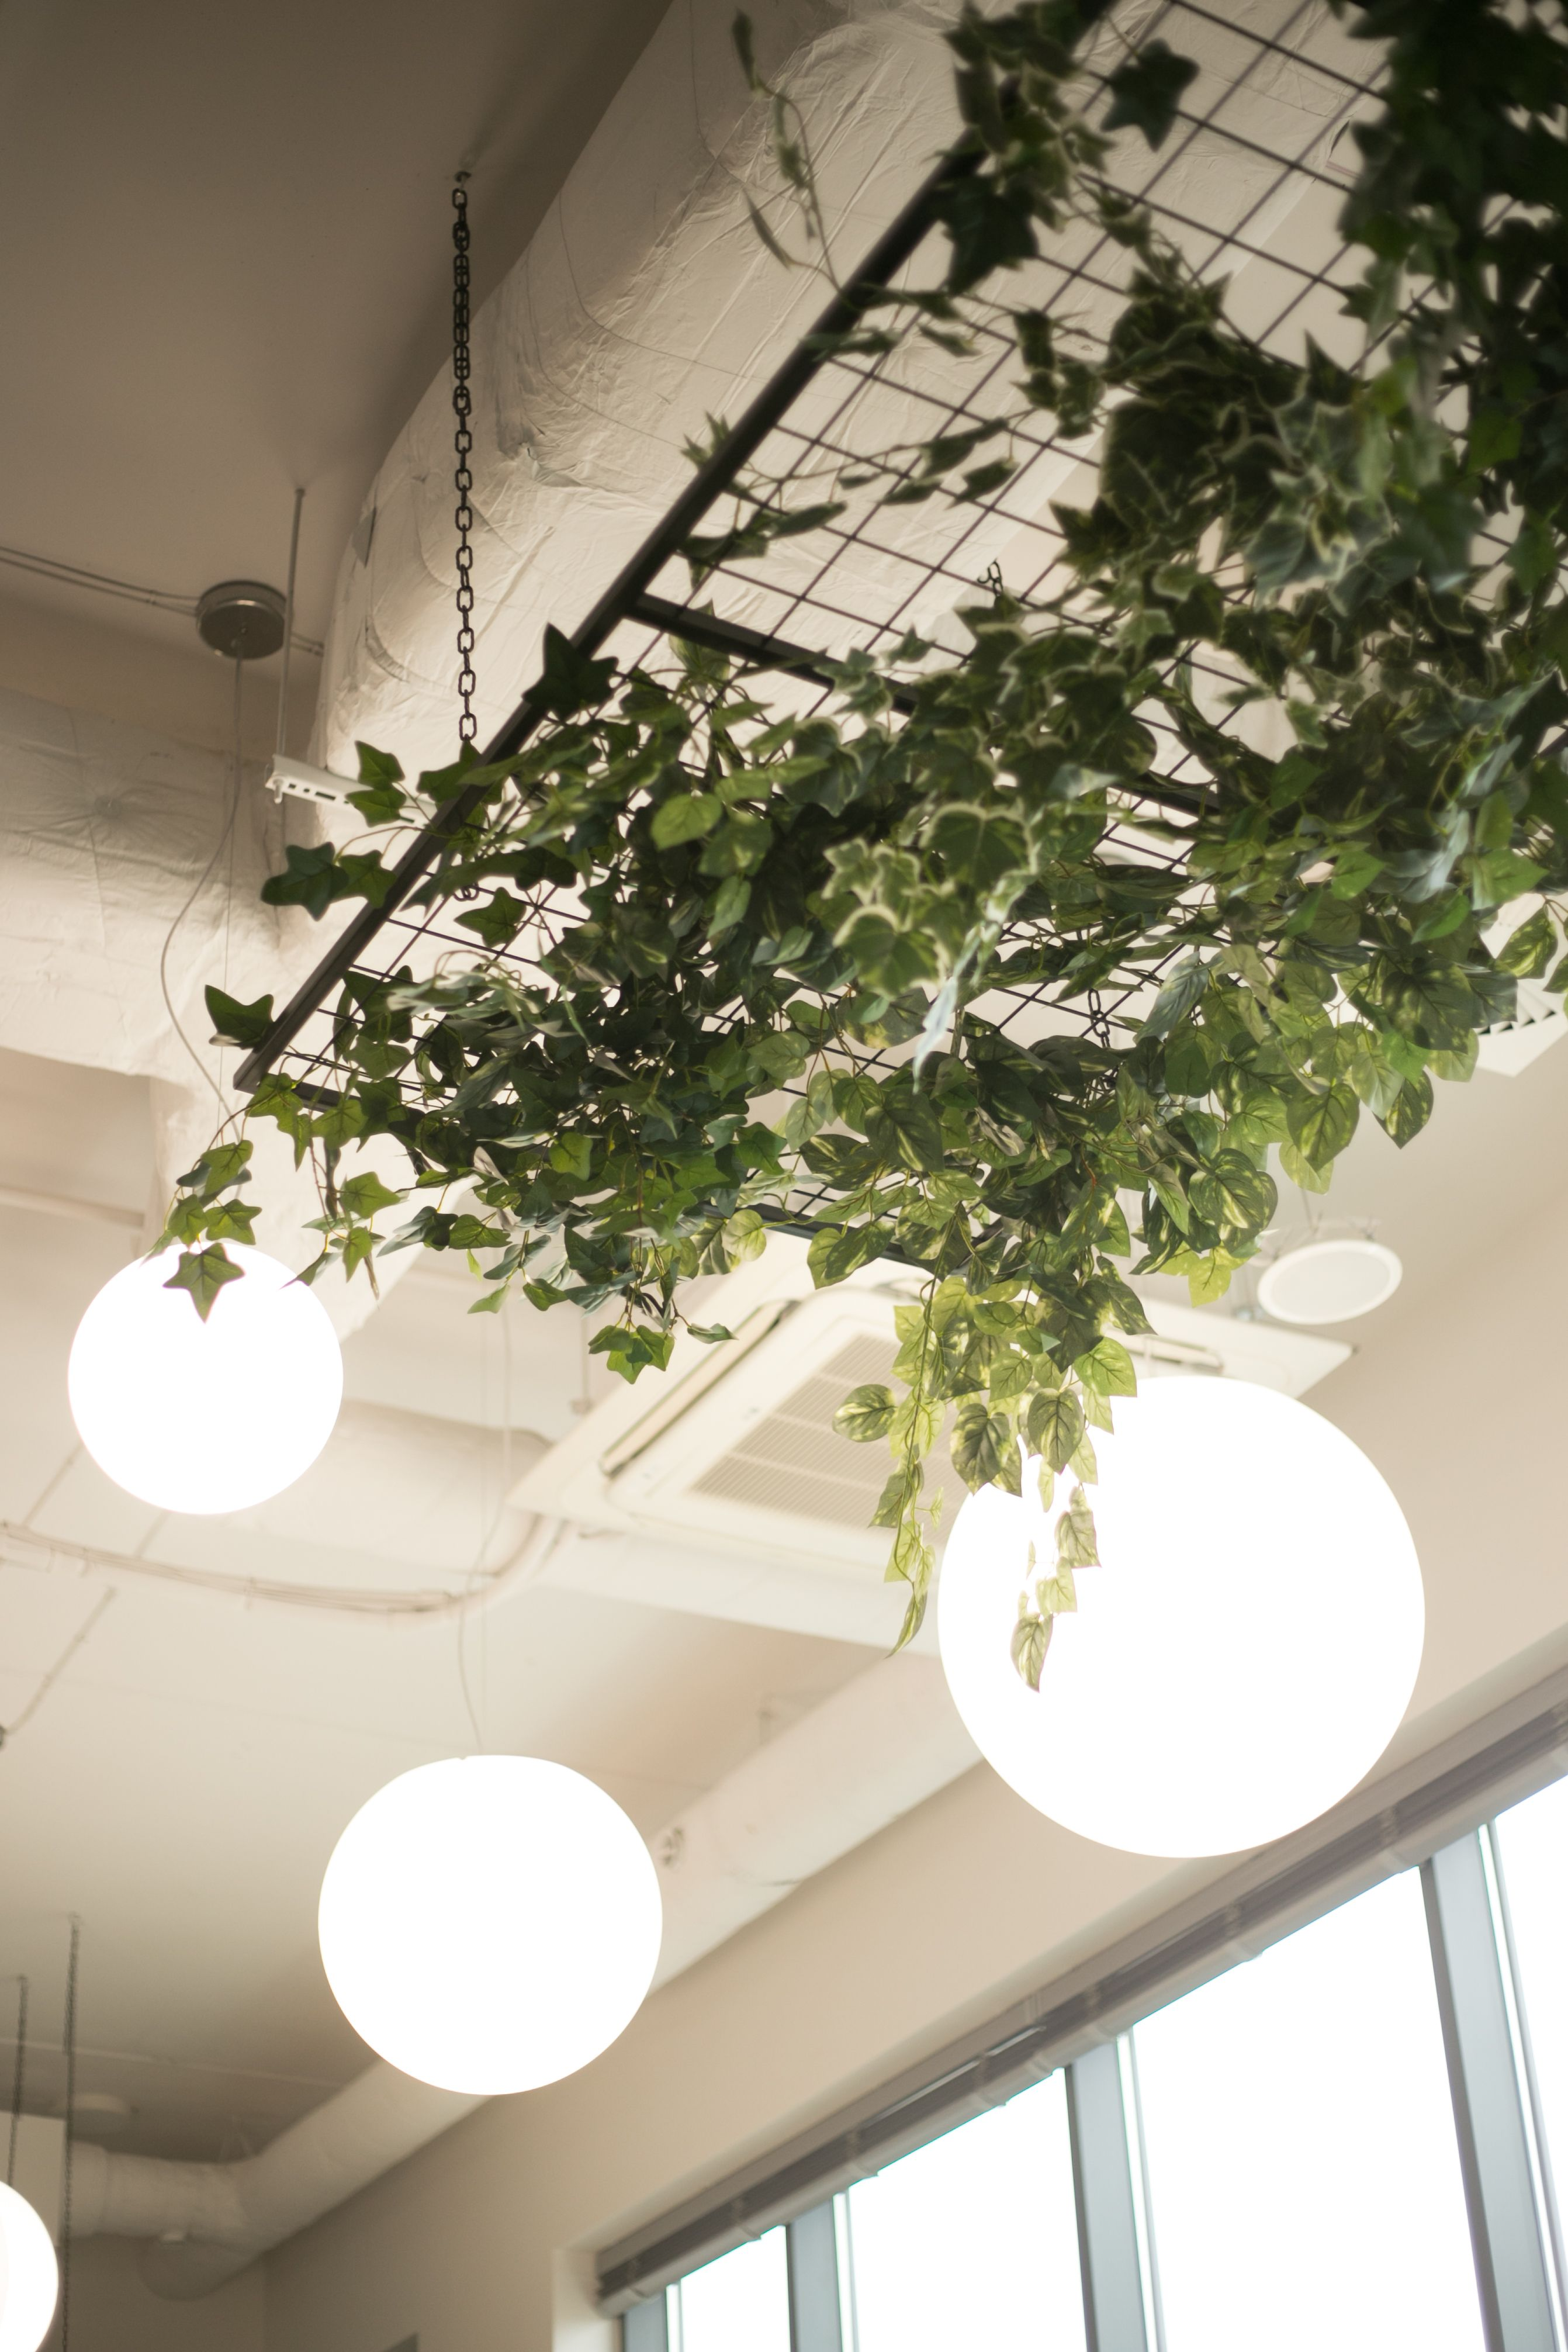 Hanging Grilles With Artificial Plants Cafe Interior Design